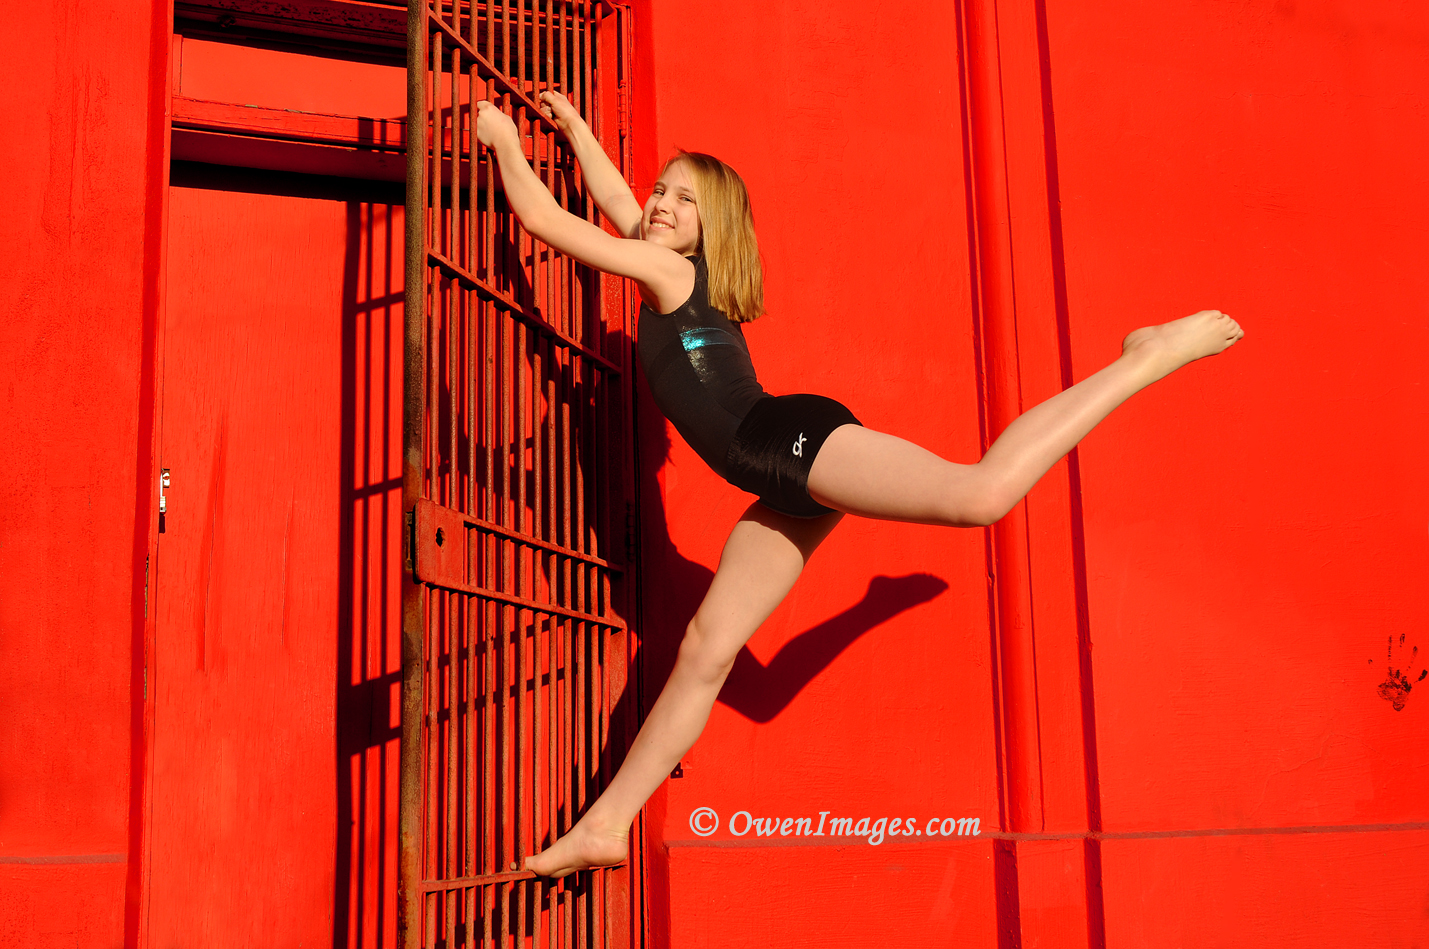 Gymnast against a red wall in downtown St Petersburg, Florida